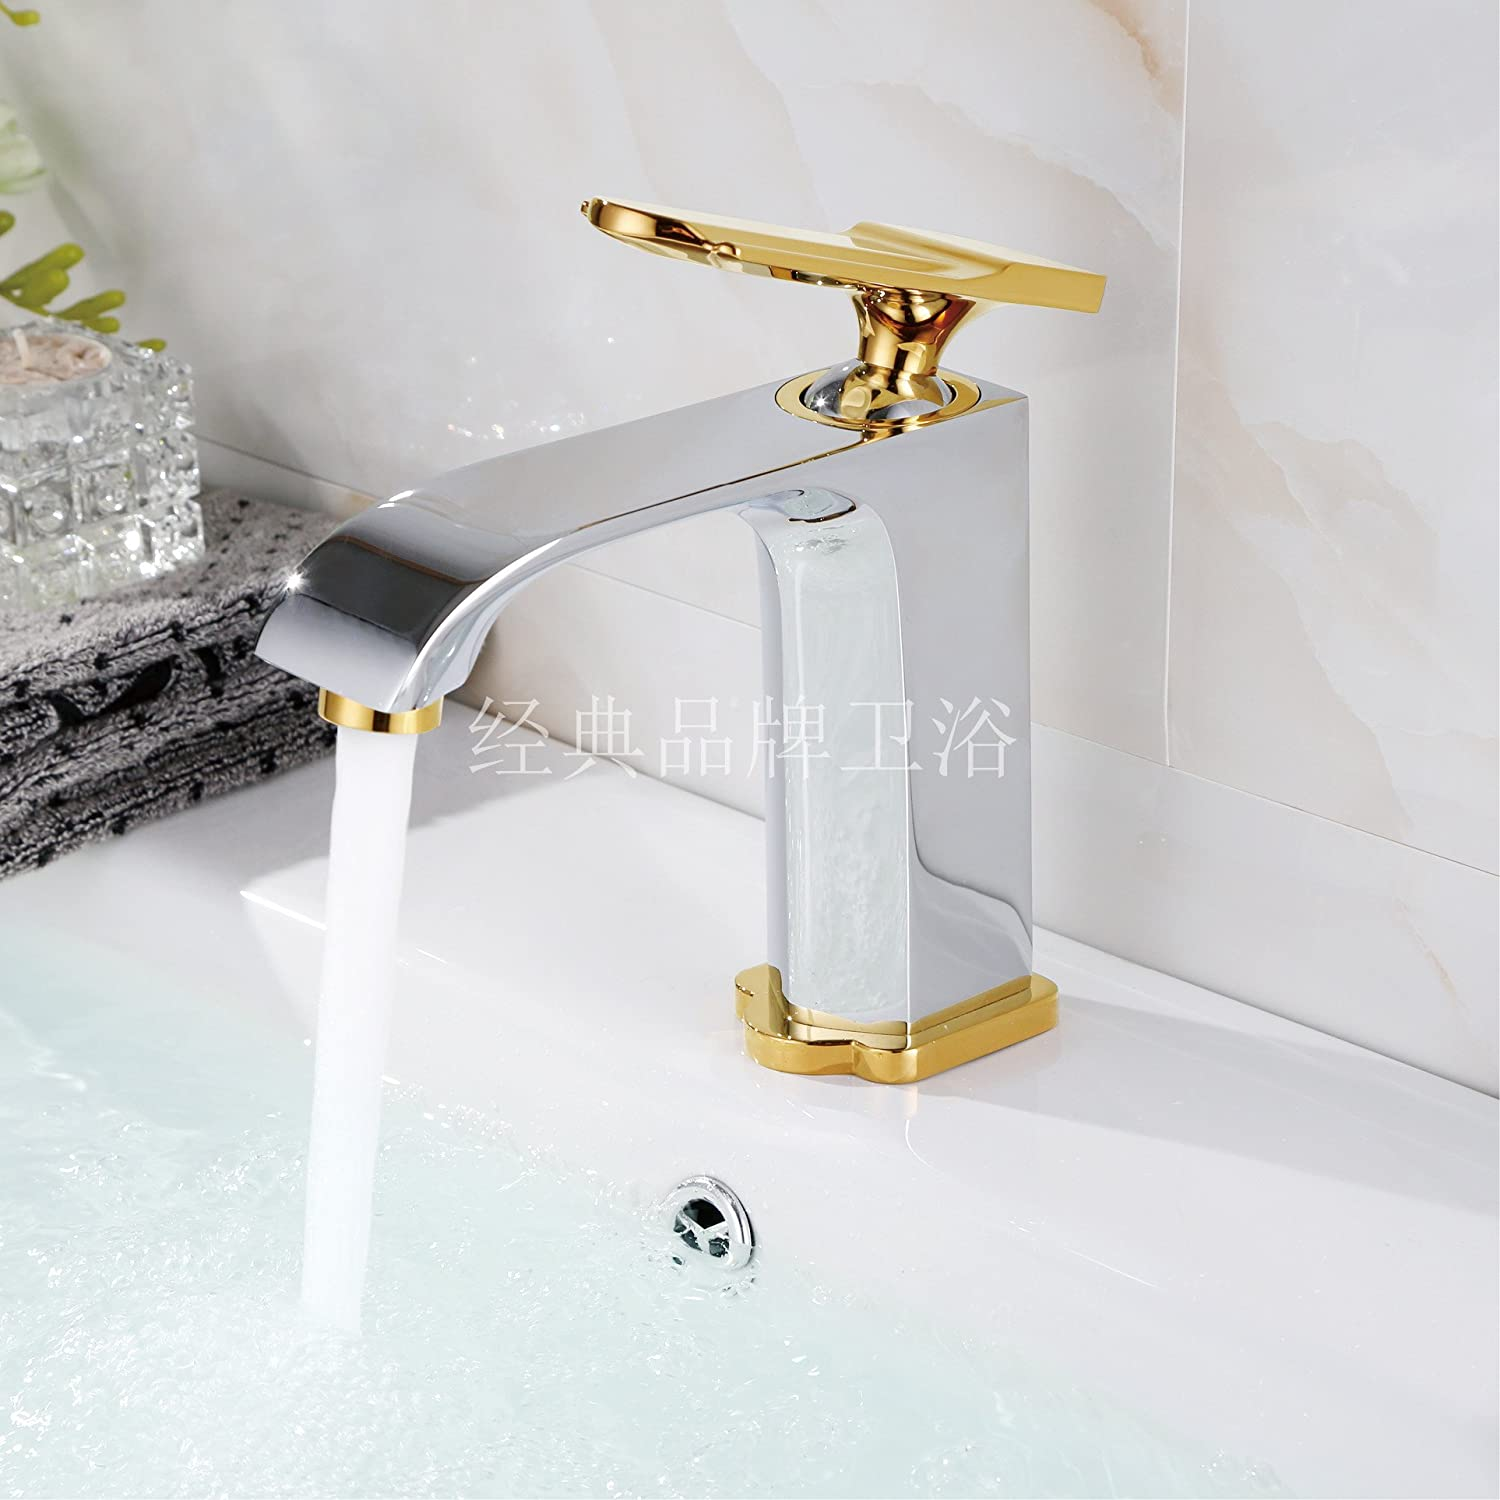 ETERNAL QUALITY Bathroom Sink Basin Tap Brass Mixer Tap Washroom Mixer Faucet The Copper Black matte surface of the tub basin basin mixer high and low, low, hot & cold wa